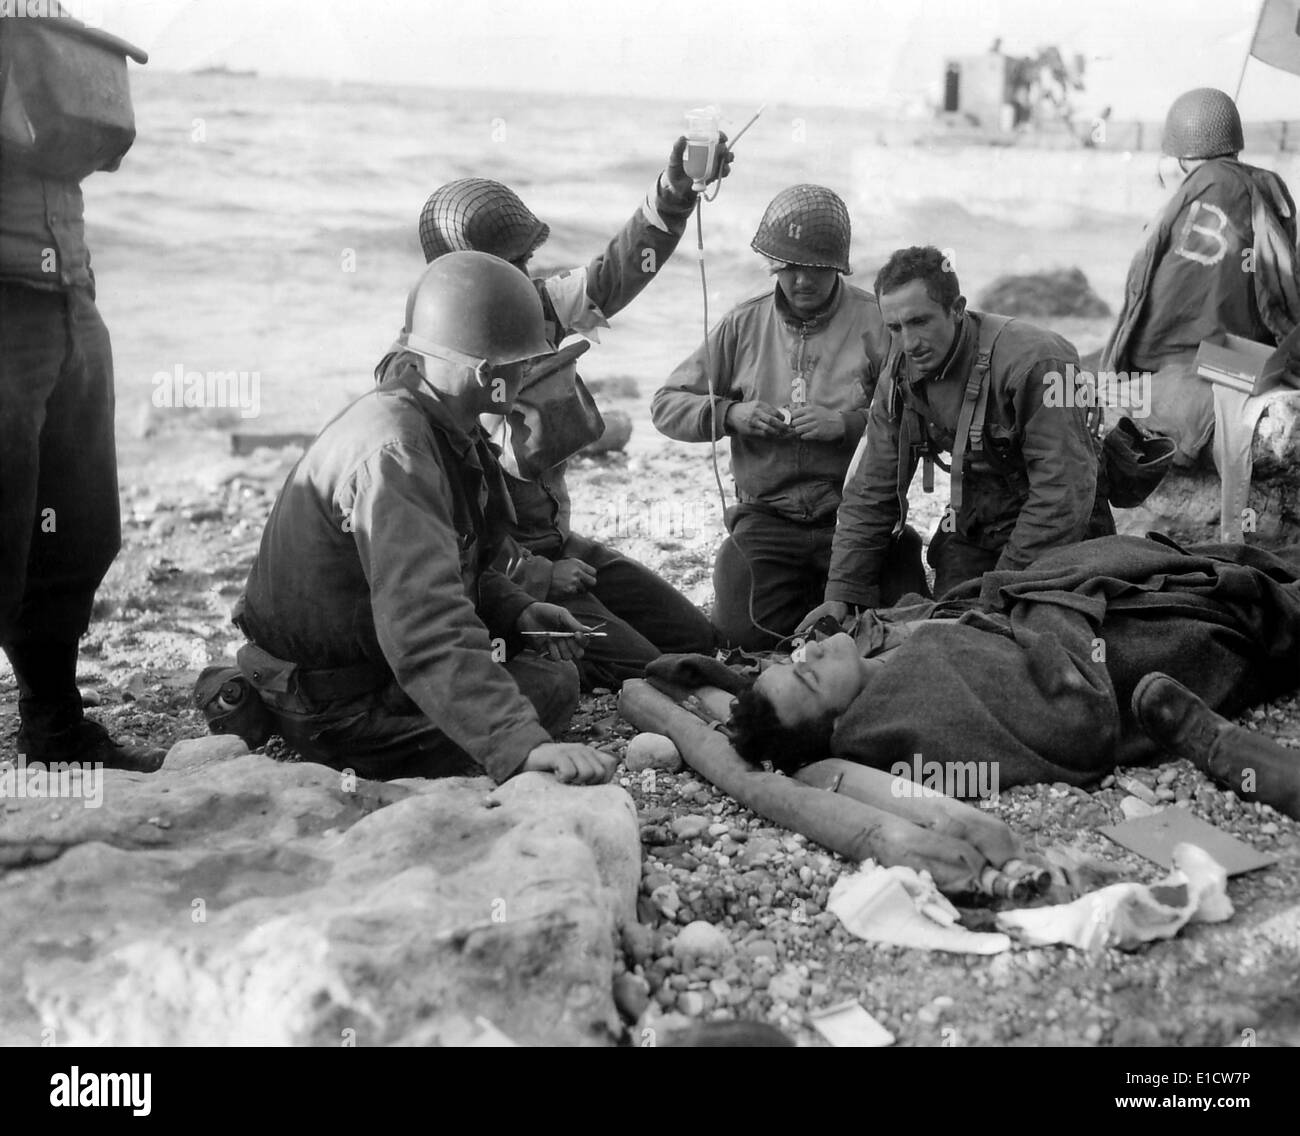 Medics administer a plasma transfusion to a wounded soldier on Omaha Beach on D-day. He is a survivor of a landing craft sunk - Stock Image